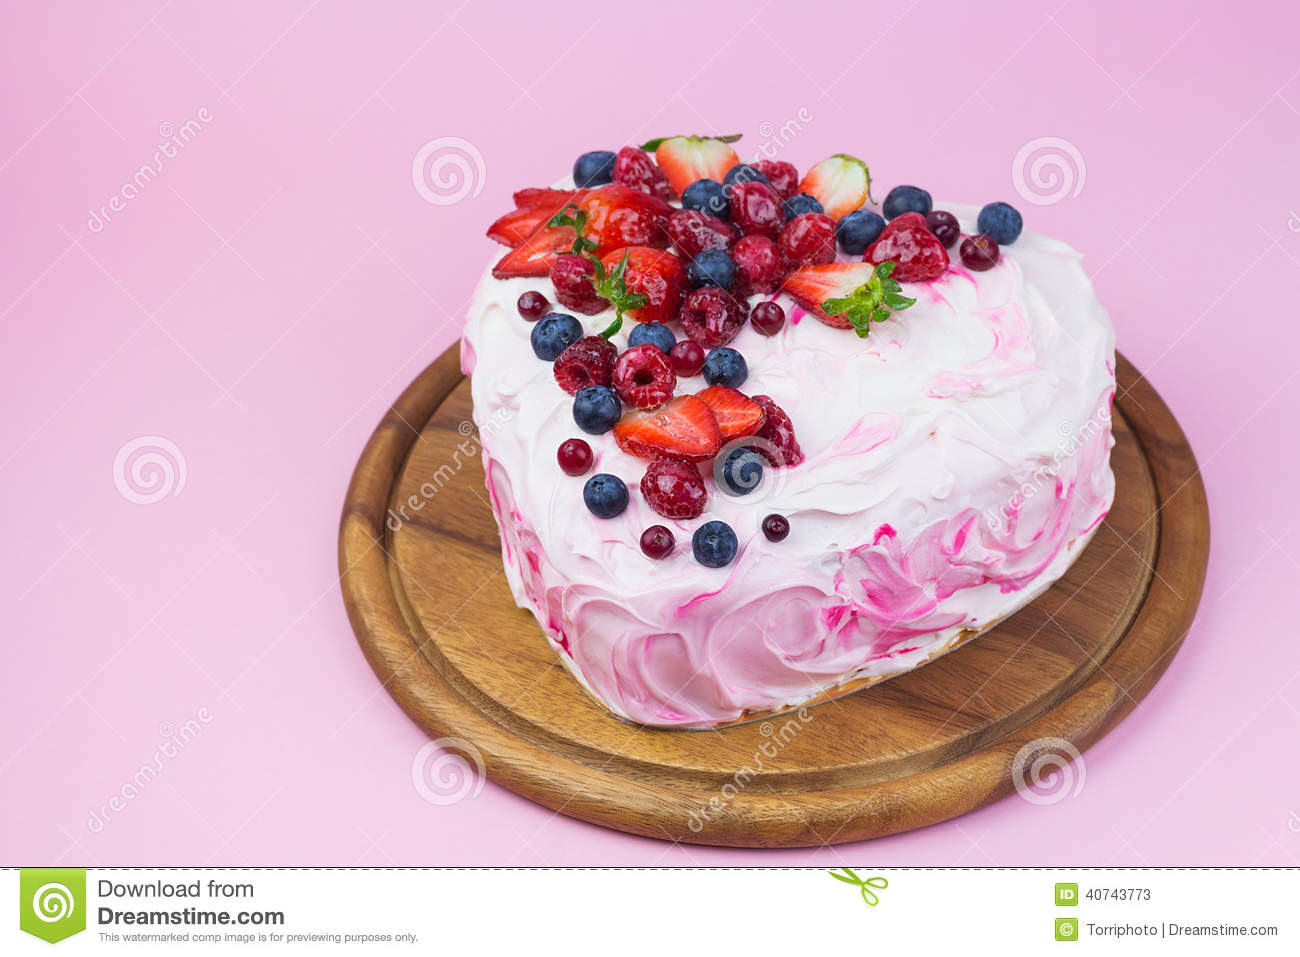 Cake Decorated With Fruits Pinterest : Delicious Heart Shaped Cream Cake With Berries Stock Photo ...